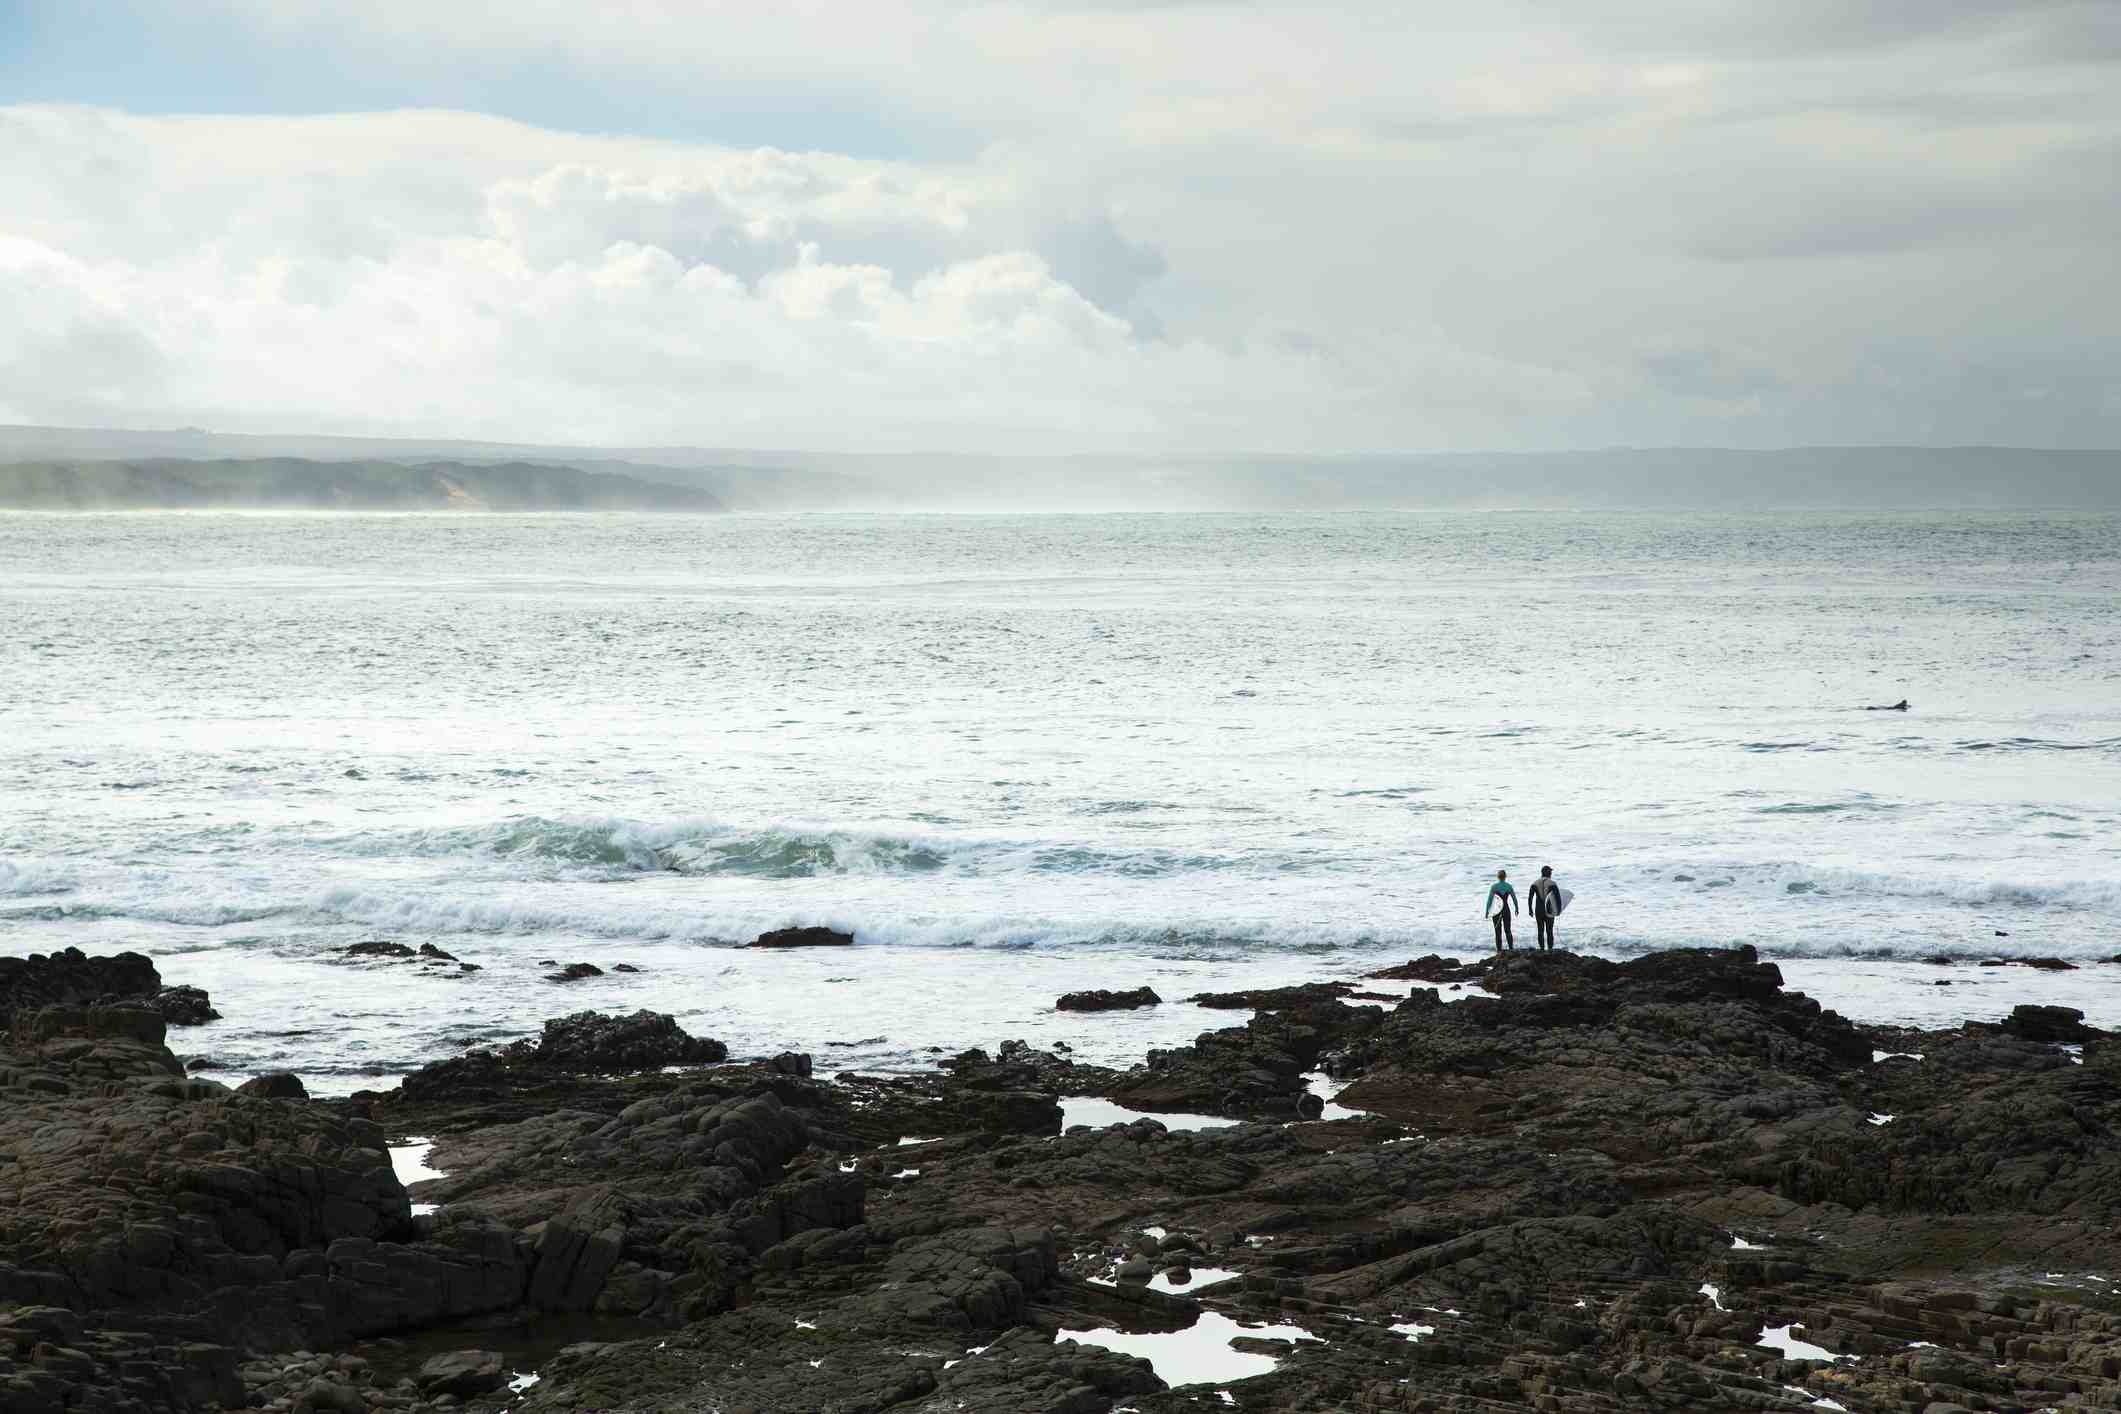 Surfers watching the sea at Stilbaai, South Africa